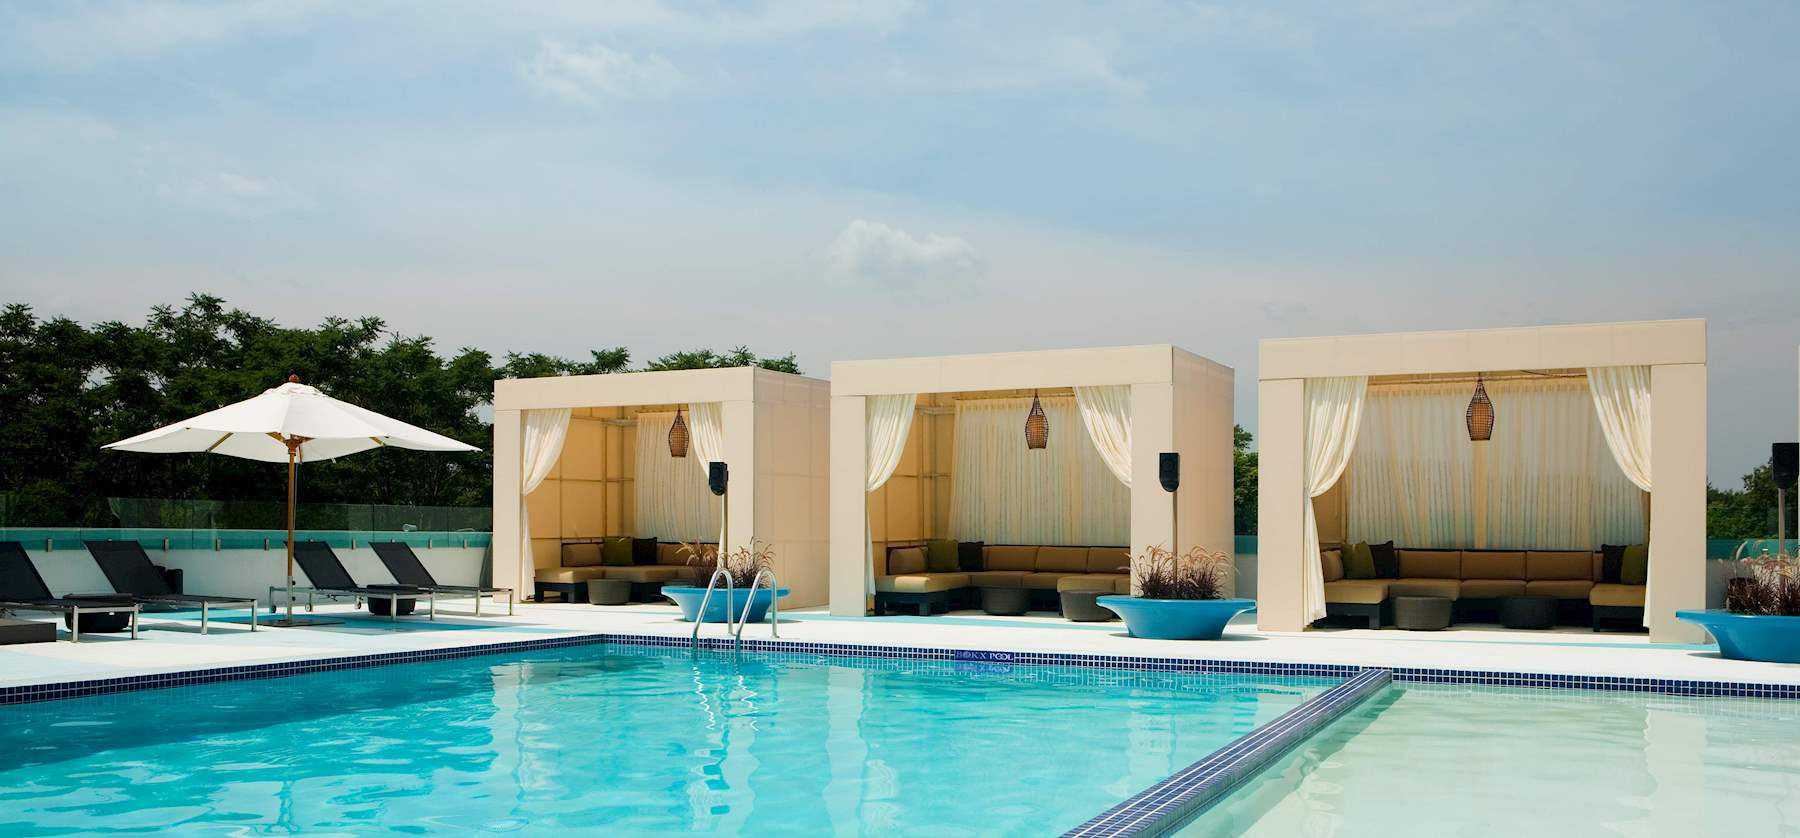 Cabanas next to an outdoor pool in Boston